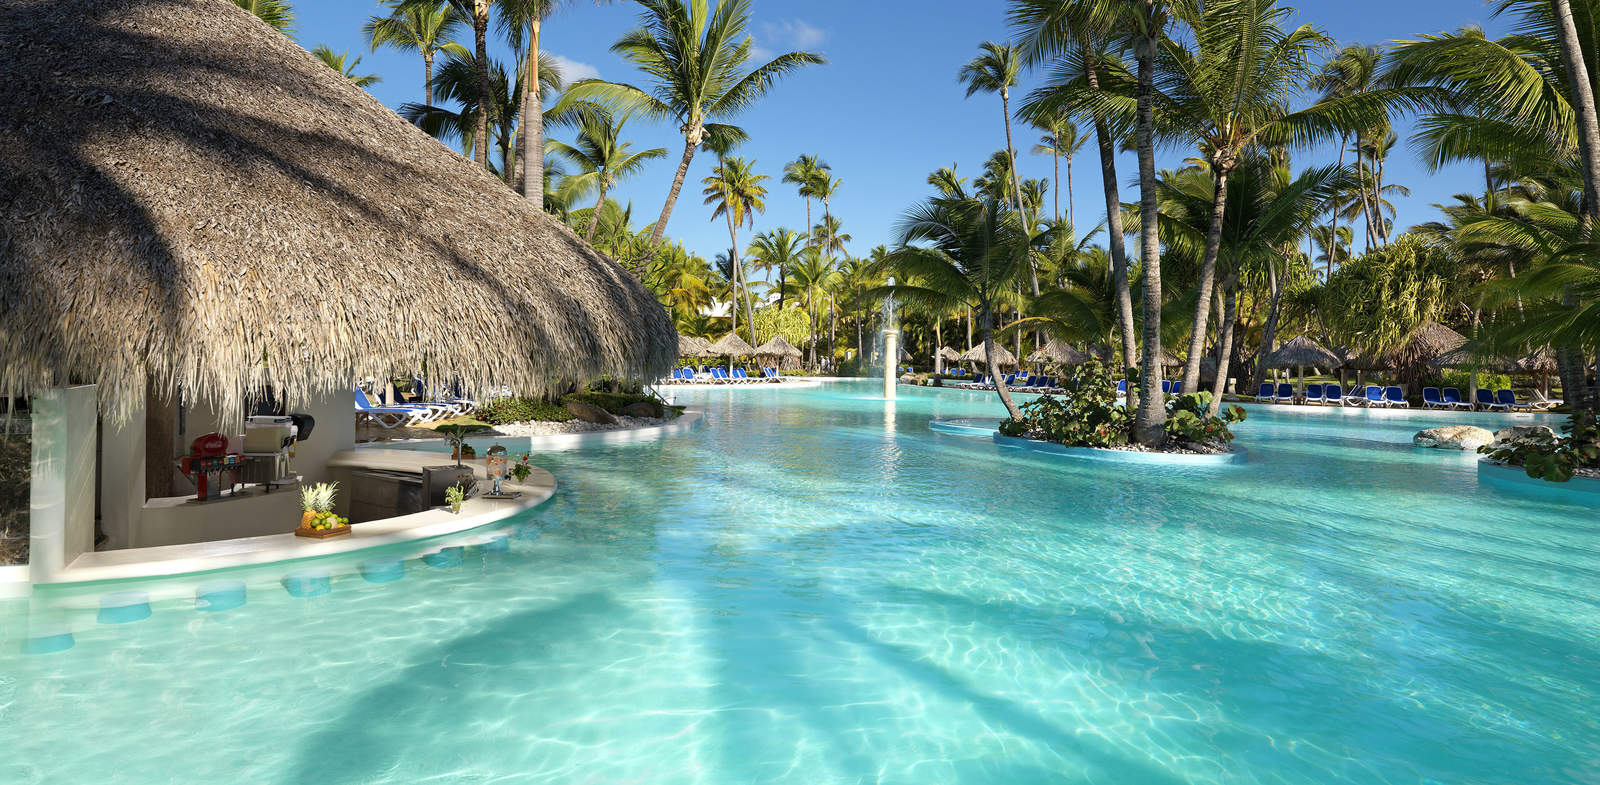 302MeliaCaribeTropical-Pool_Main-1600x785